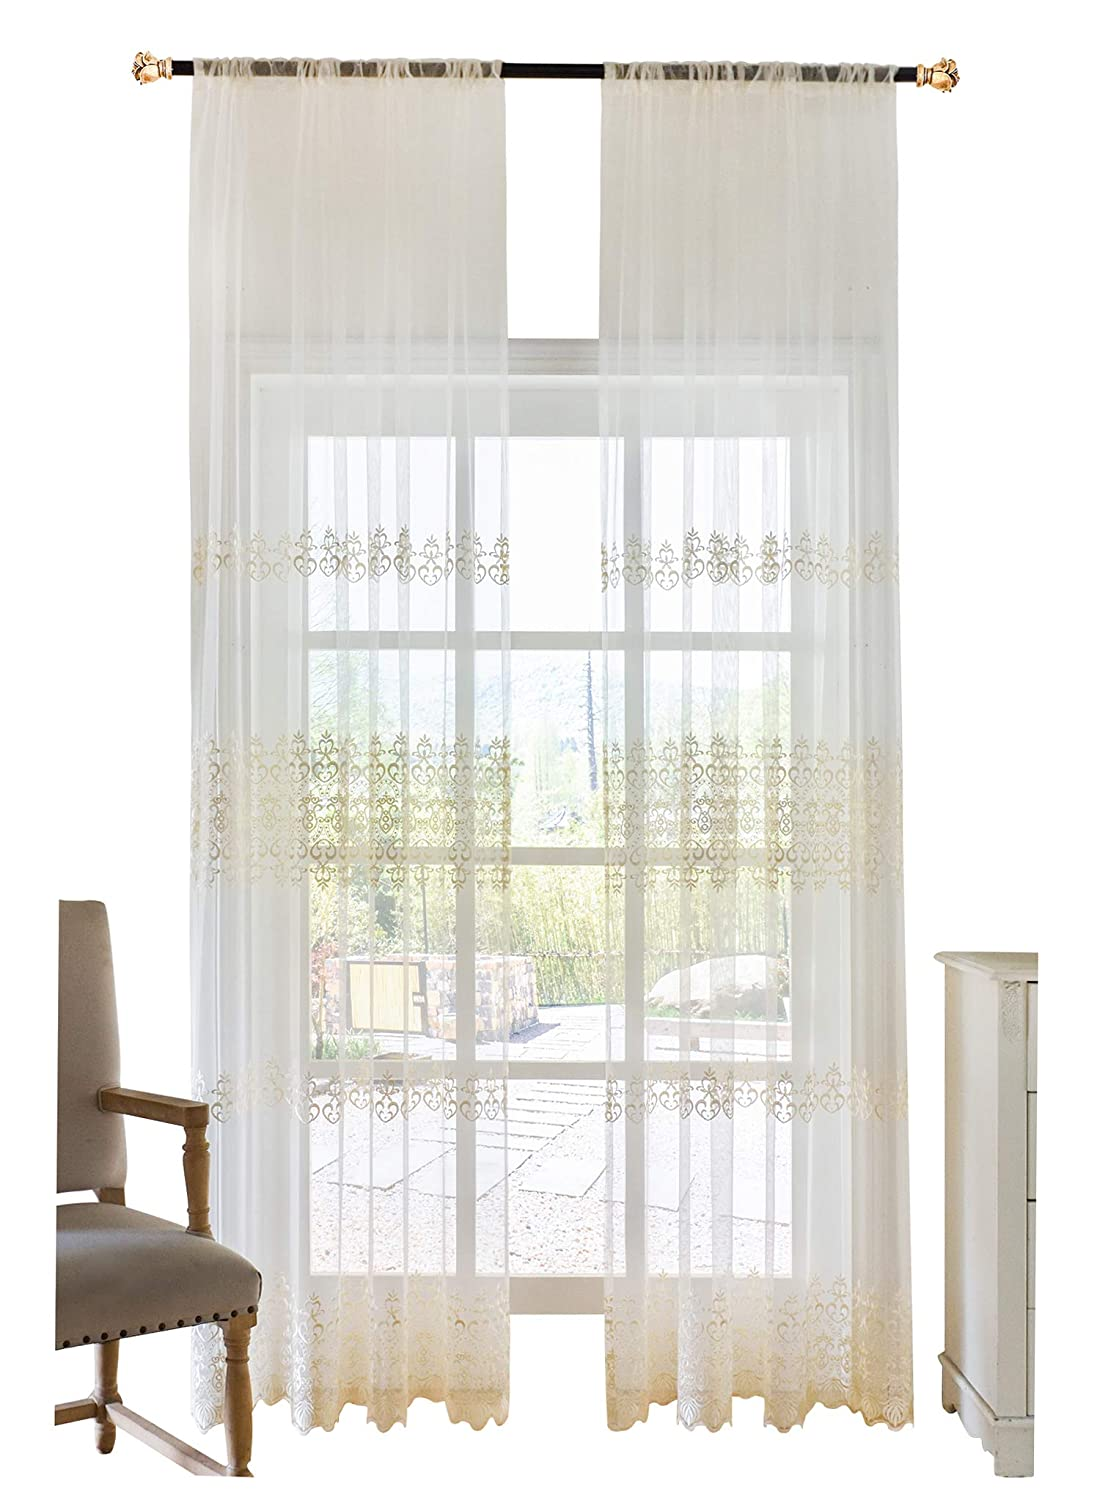 1980196C2BYFWH150102-8518 Elegance Fine Embroidered Sheer Curtain Window Treatment Transparent Rod Pocket Voile Drape for Bedroom Living Room 1 Panel, W 50 x L 102 inch, White